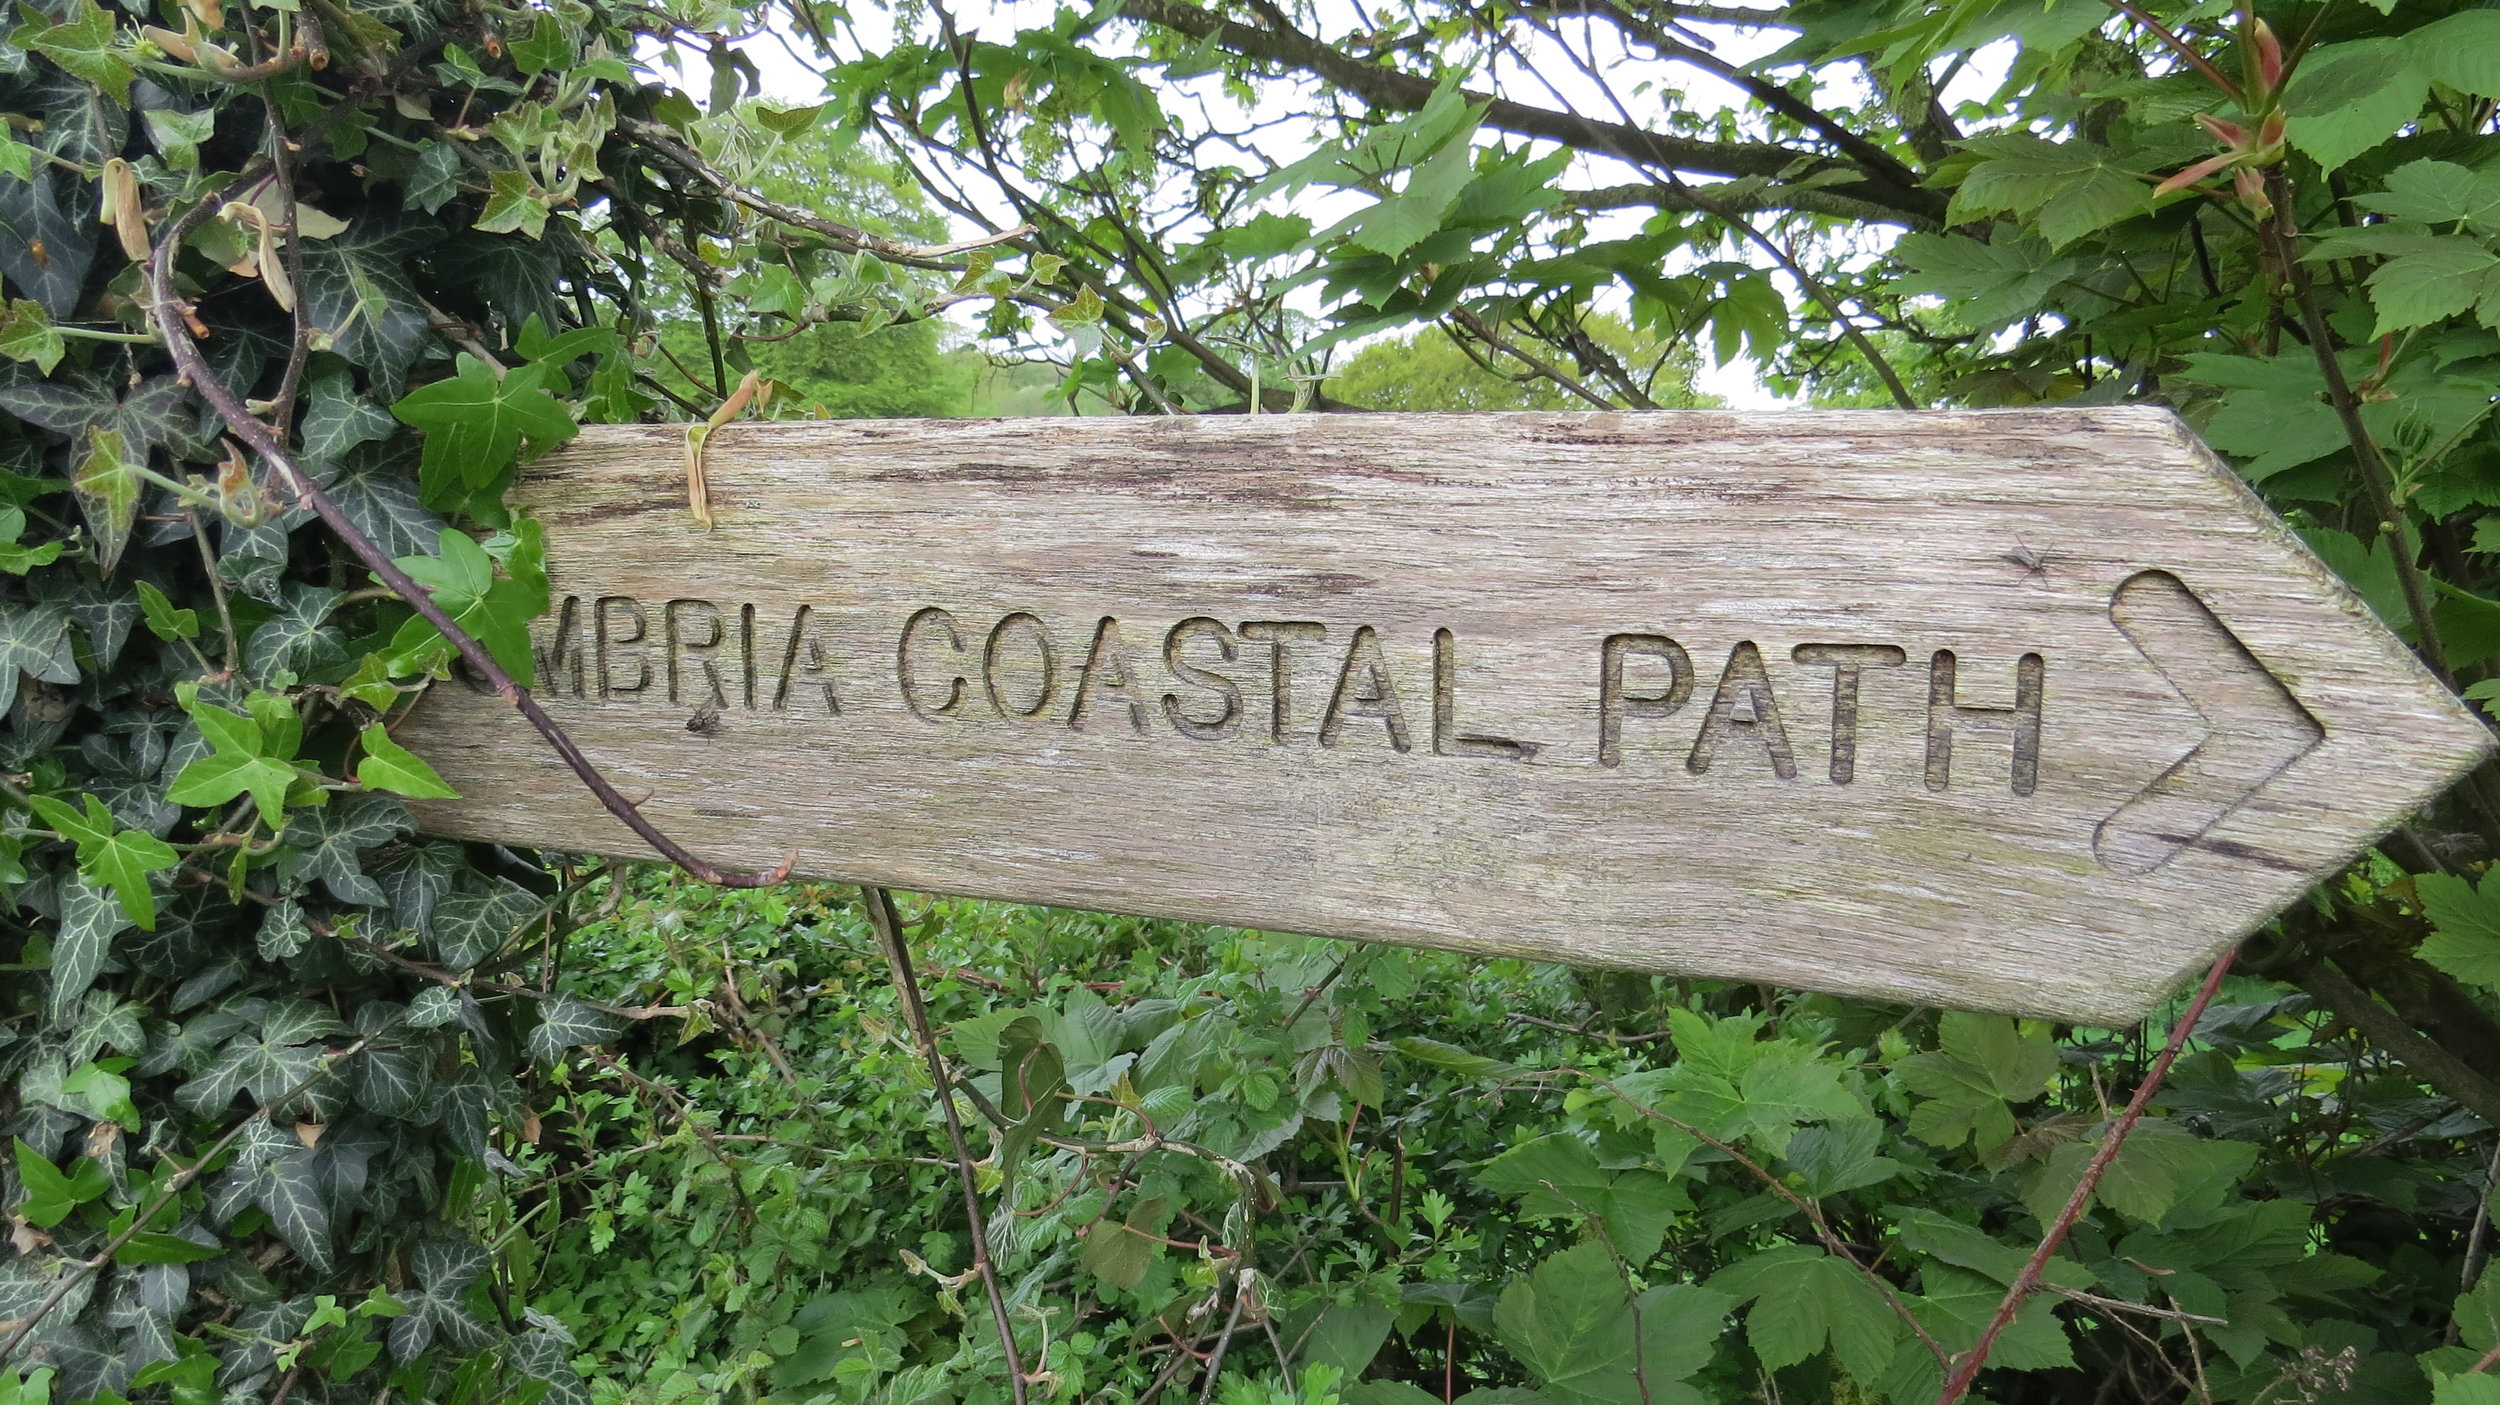 The Mysterious Cumbria Coastal Way